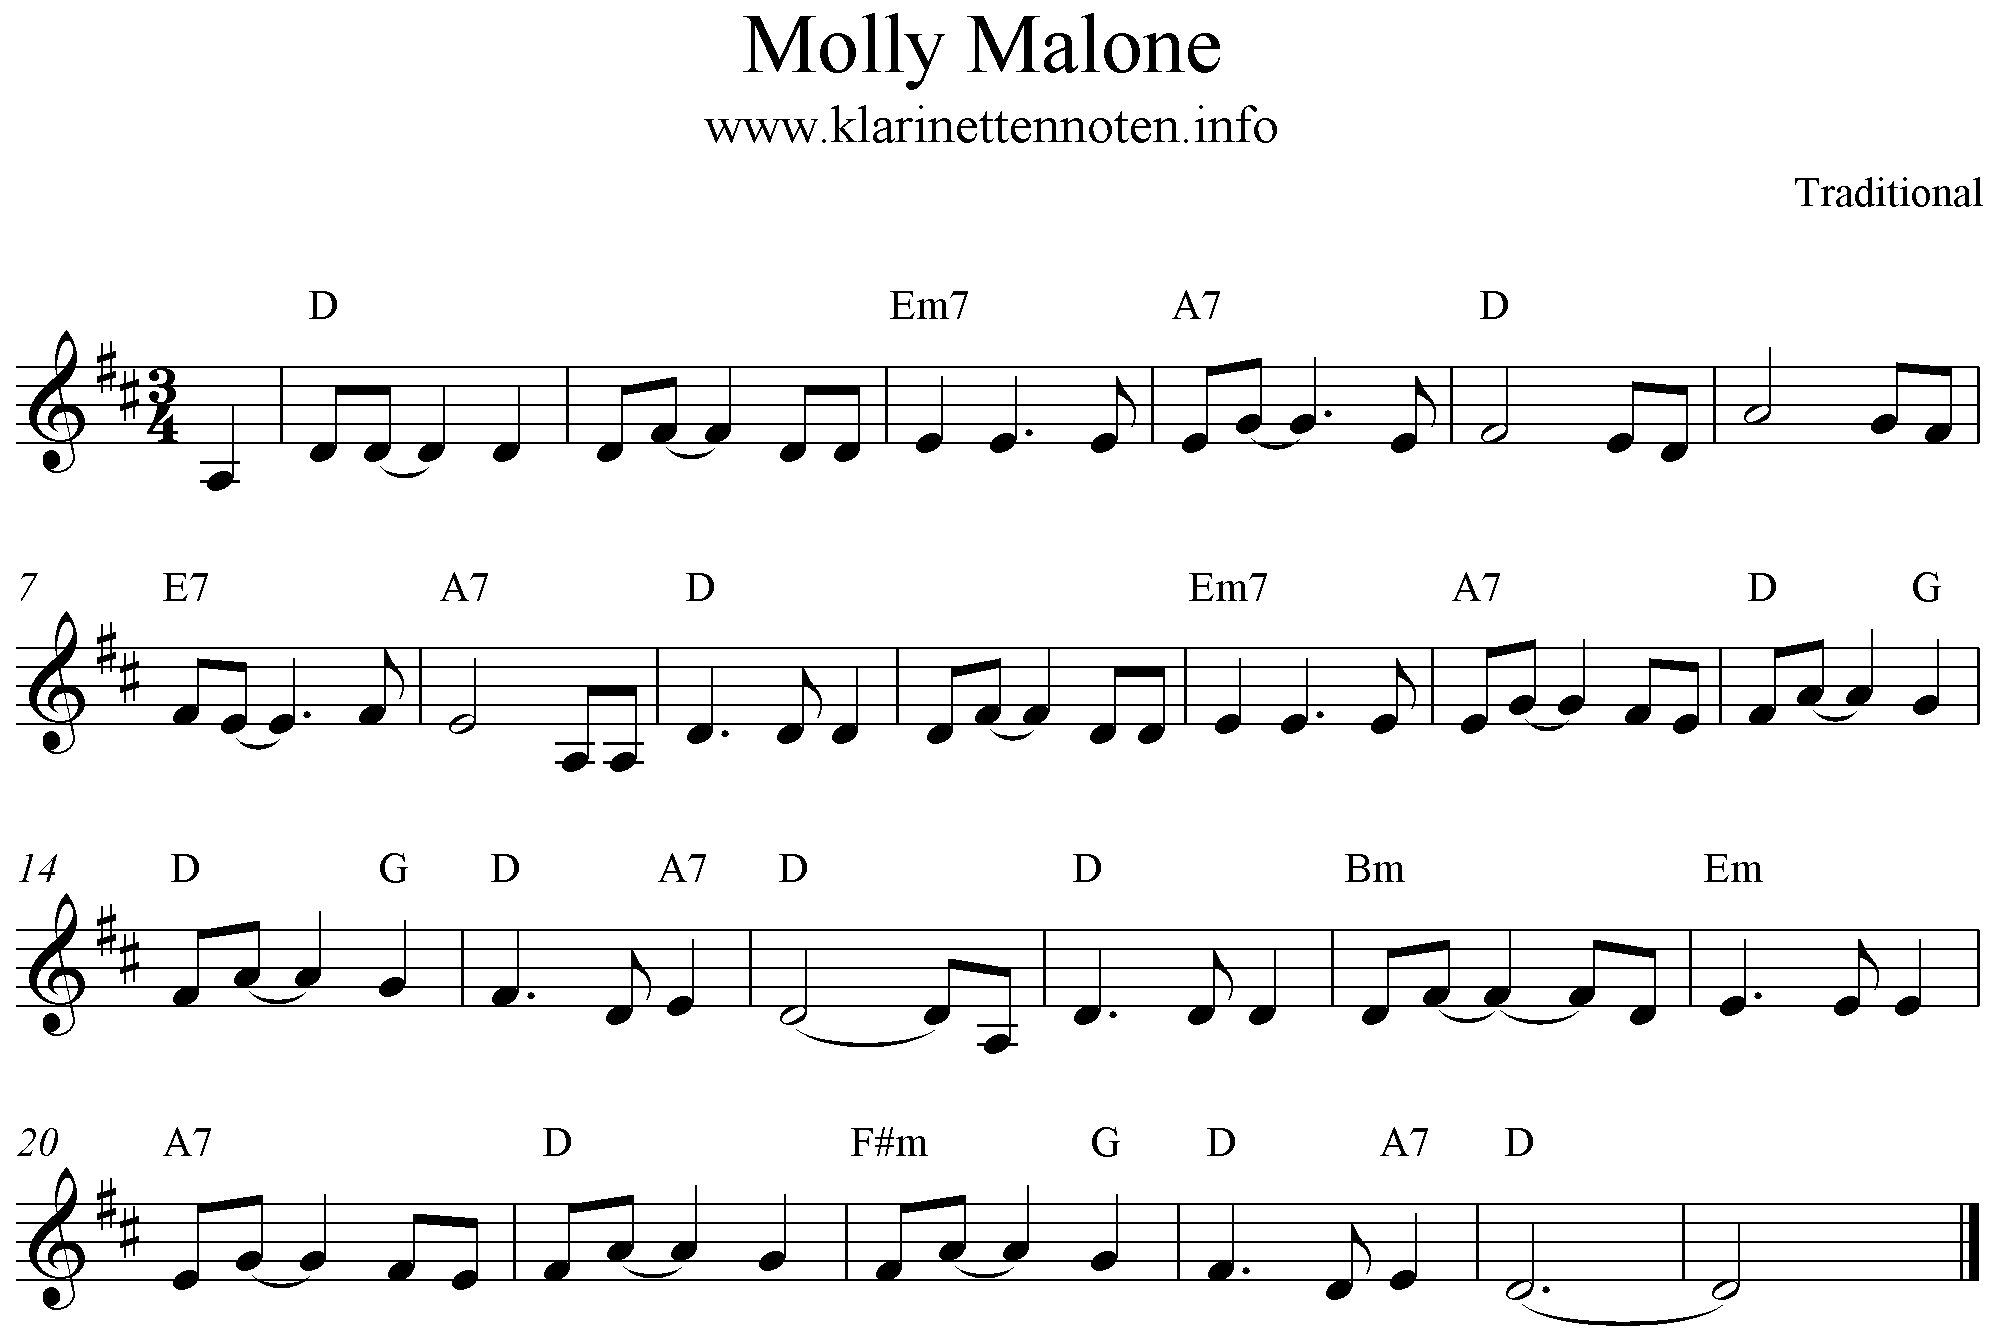 Molly Malone score for Clarinet D-Major